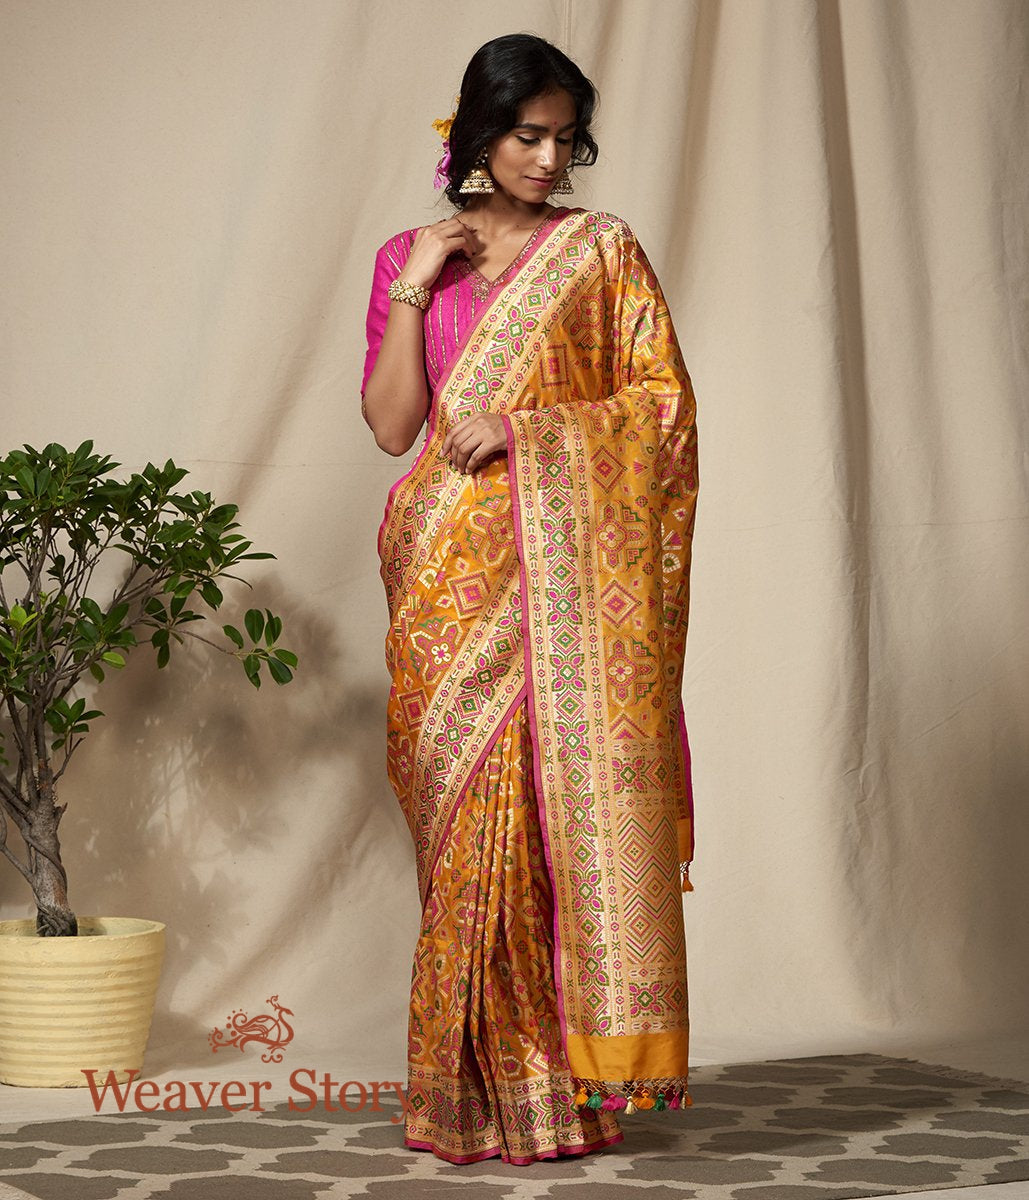 Handwoven Banarasi Patola Saree with Zari Meenakari Border